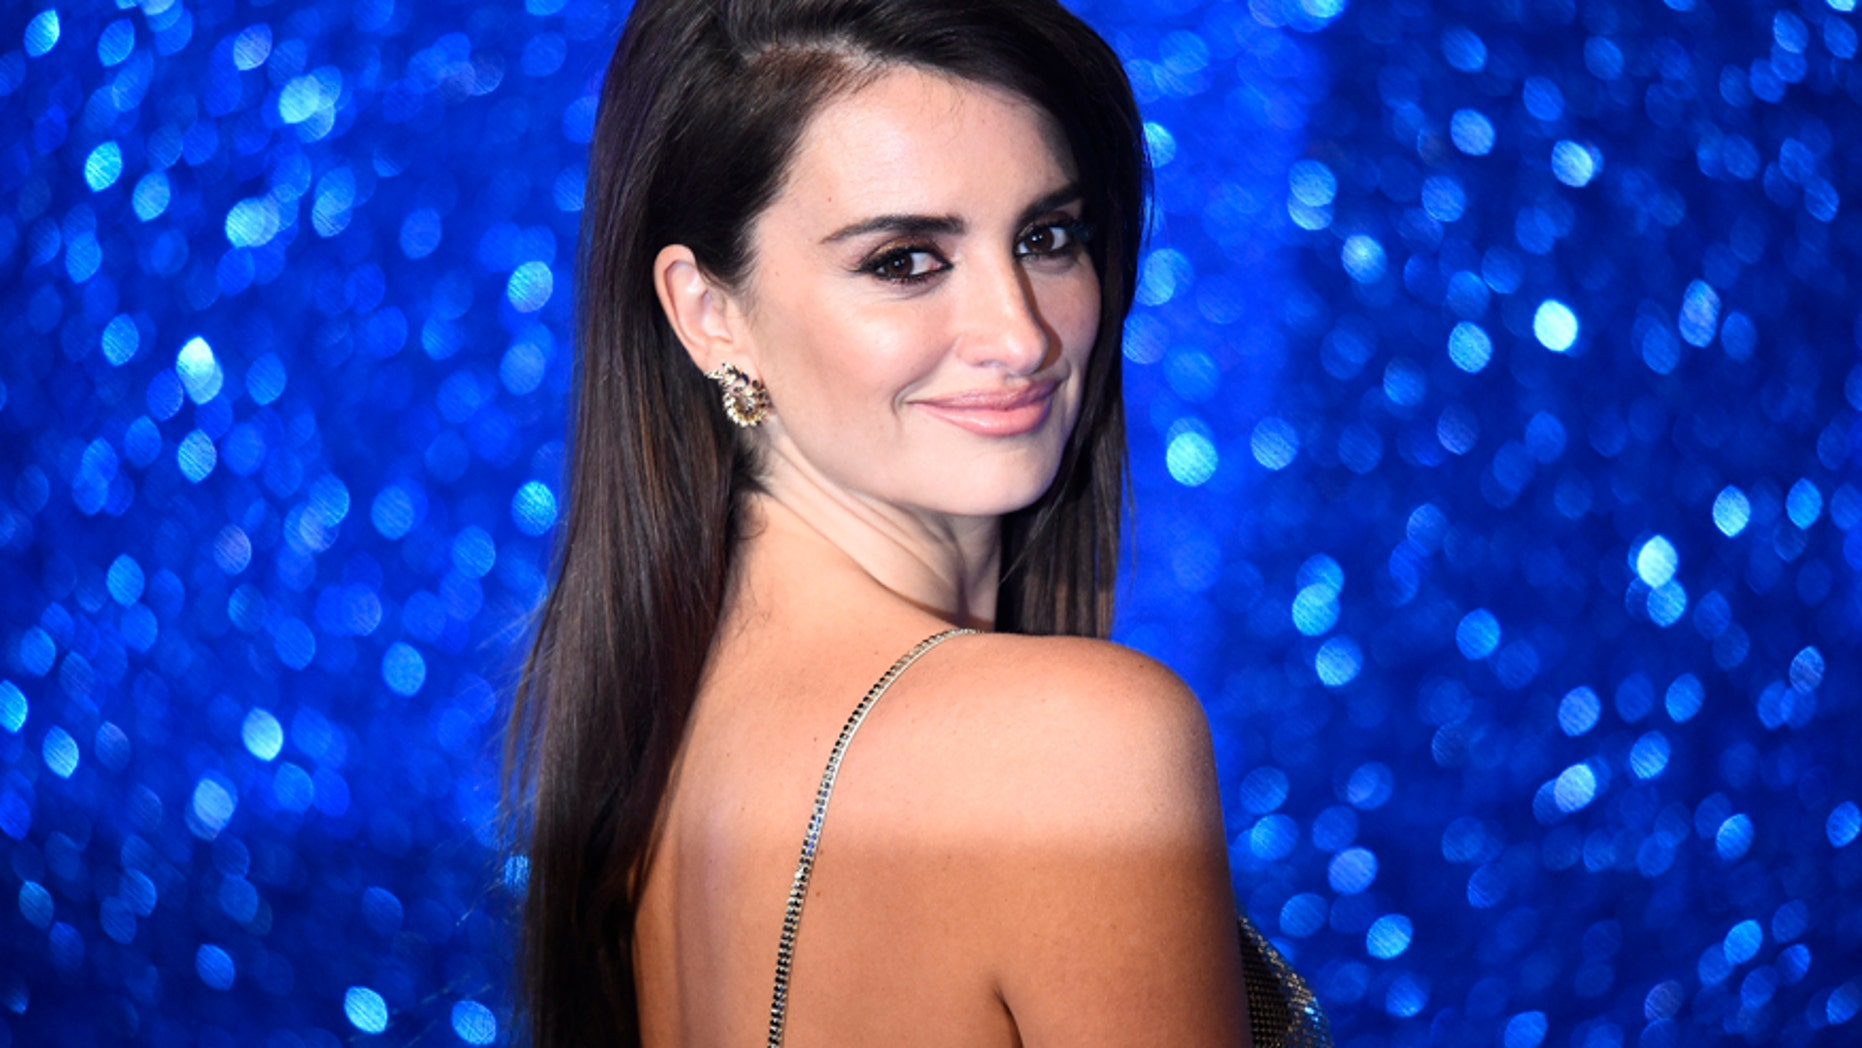 Penelope Cruz poses for photographers at the screening of Zoolander 2 at a cinema in central London, February 4, 2016.